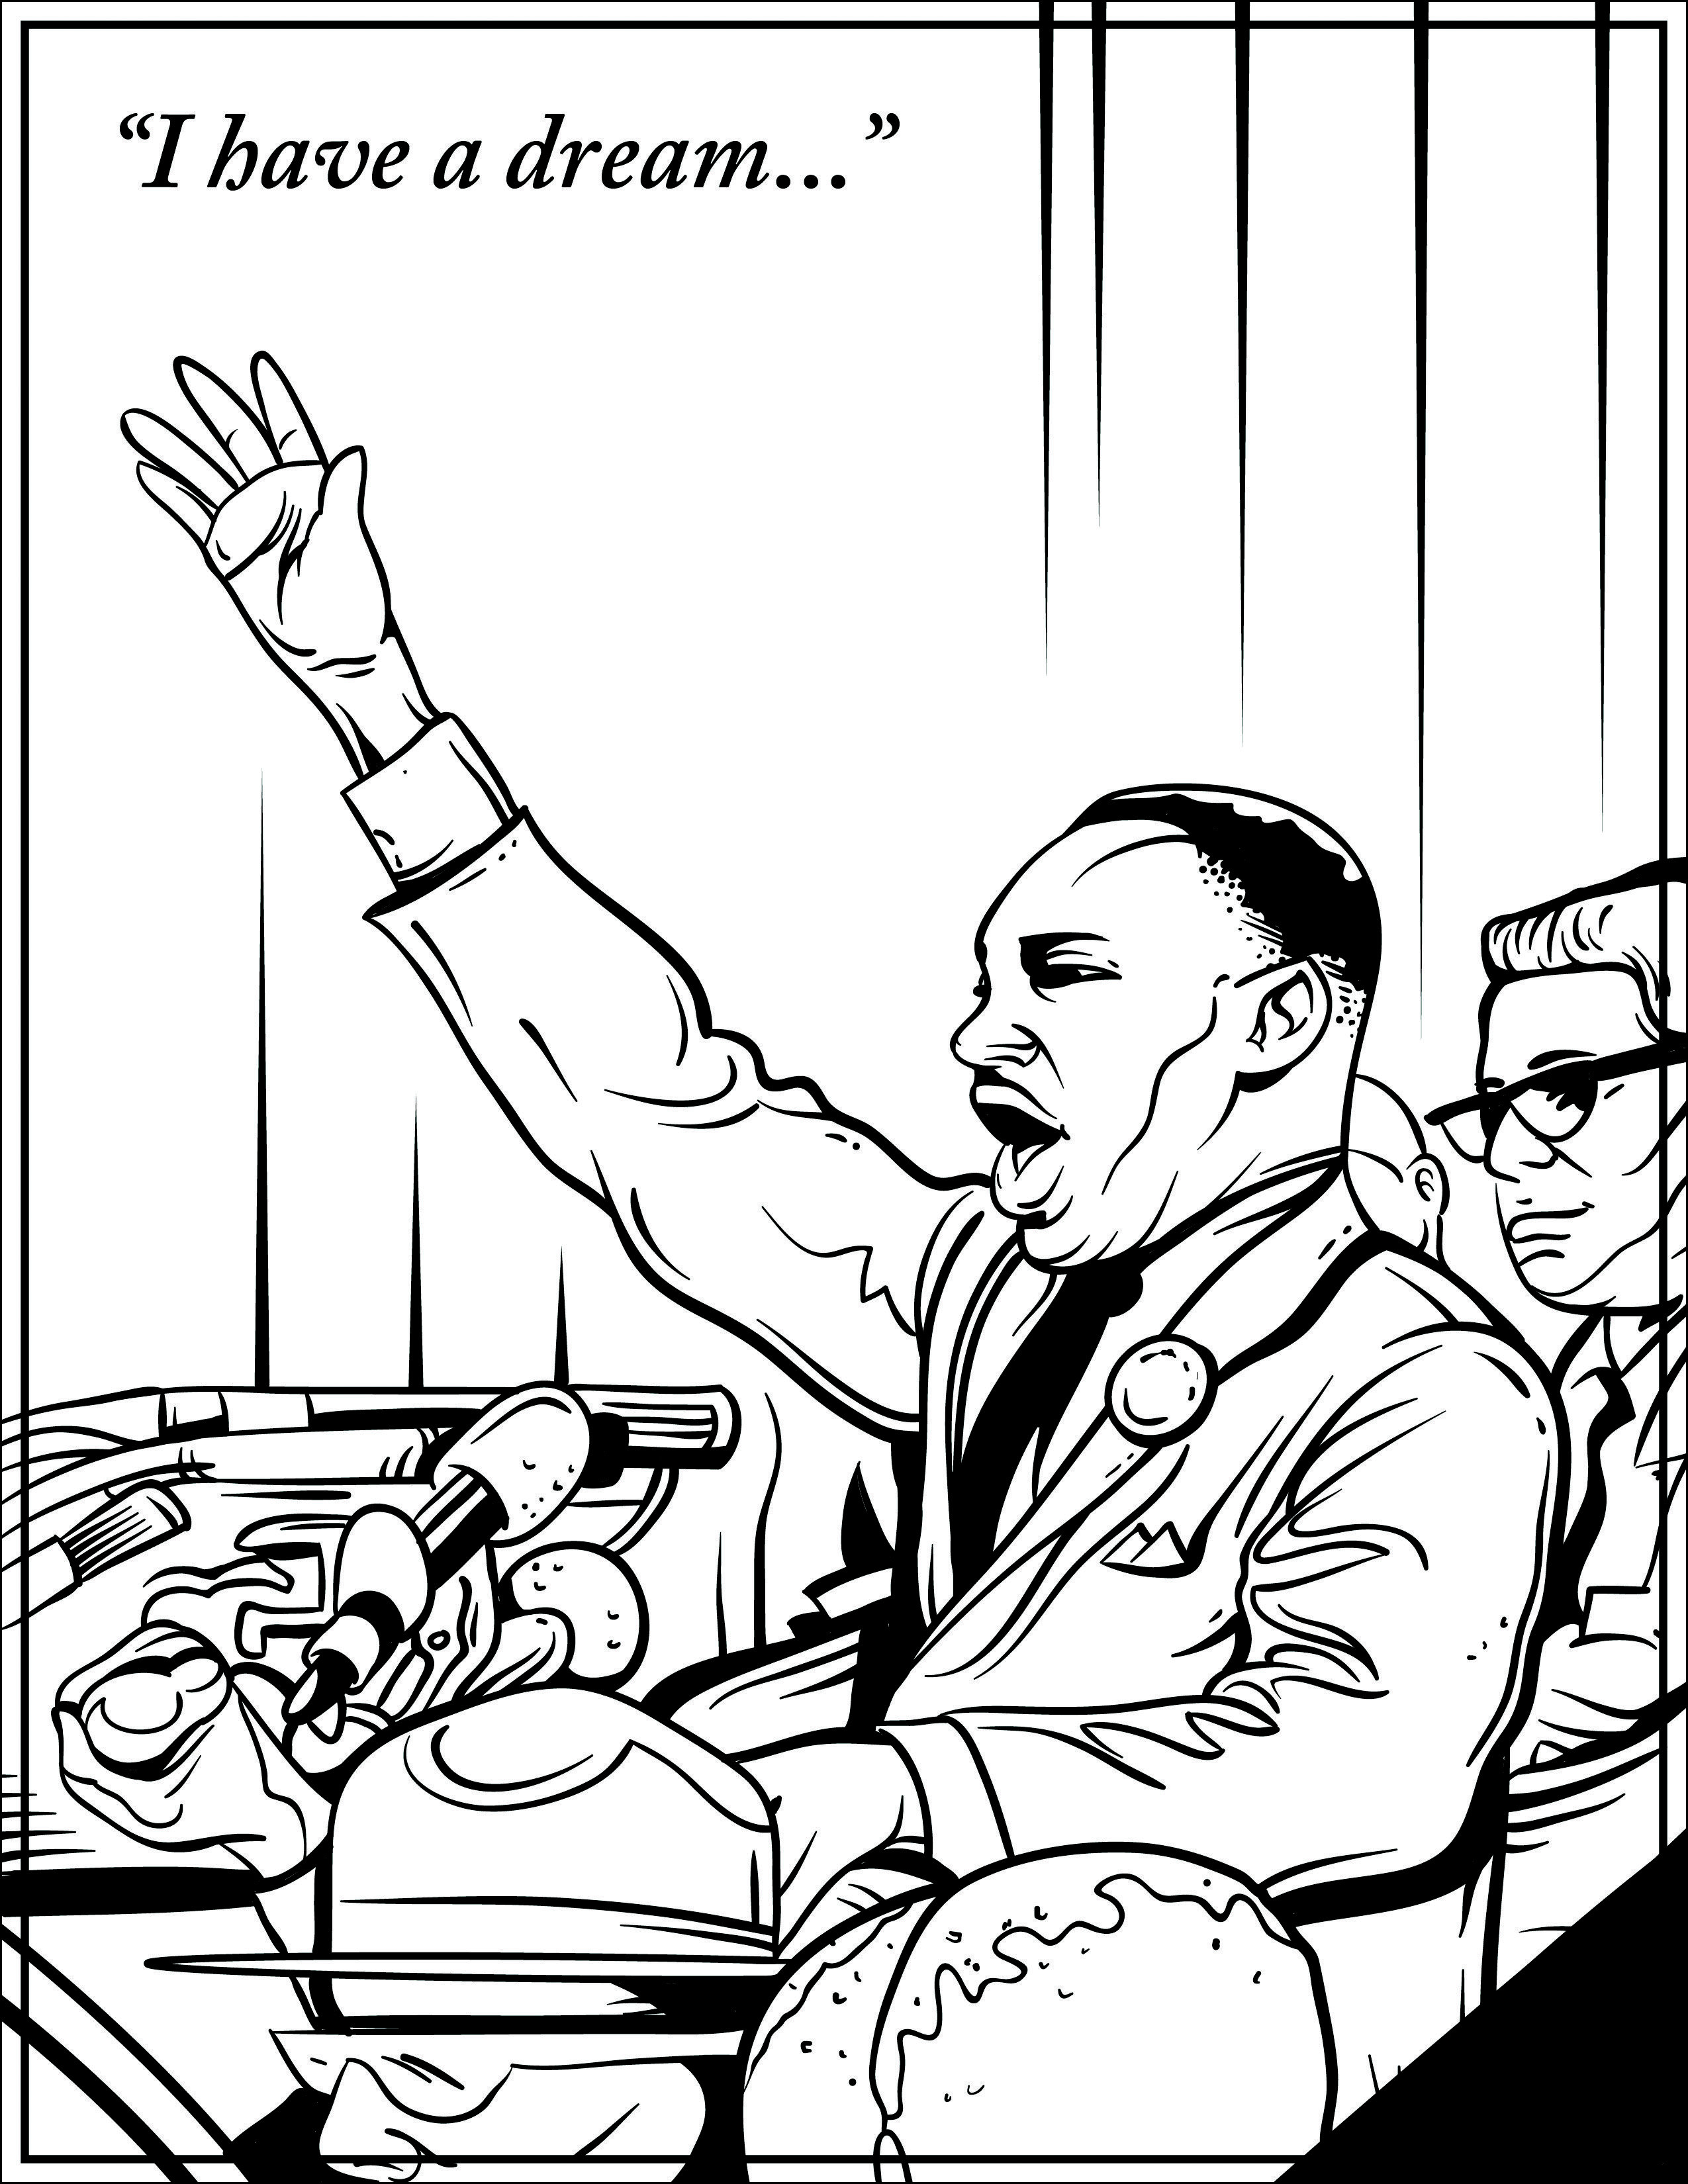 Free coloring pages martin luther king jr - A Great Martin Luther King Jr Day Activity For Students And Kids